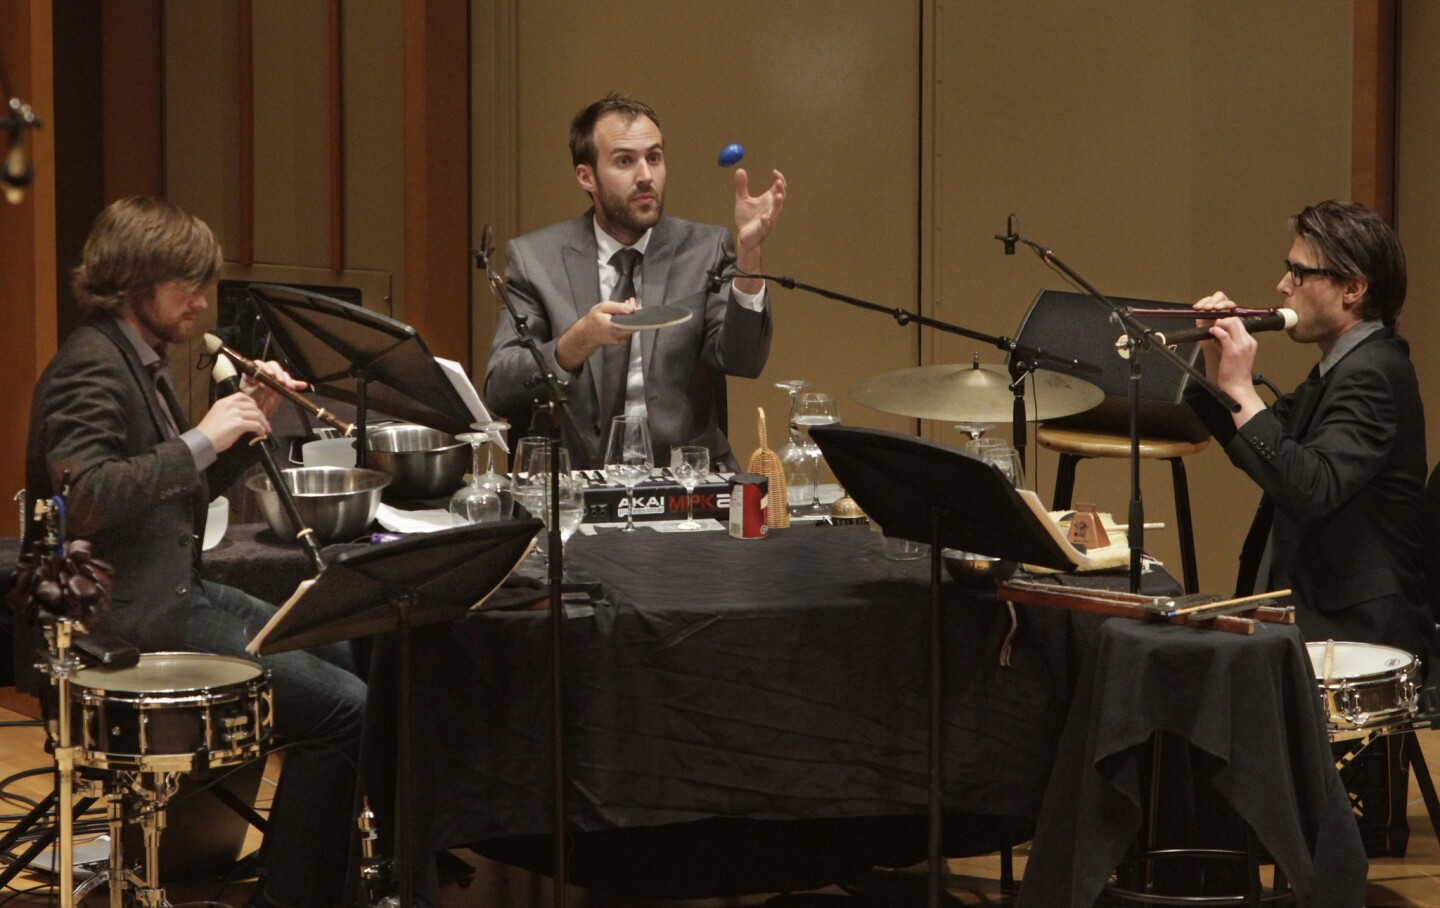 """Percussionists Ryan Nestor, left, Eric Derr and Jonathan Hepfer of the Echoi Ensemble performing Thomas Meadowcroft's """"The Great Knot"""" in New Voices II at the Zipper Concert Hall at the Colburn School."""